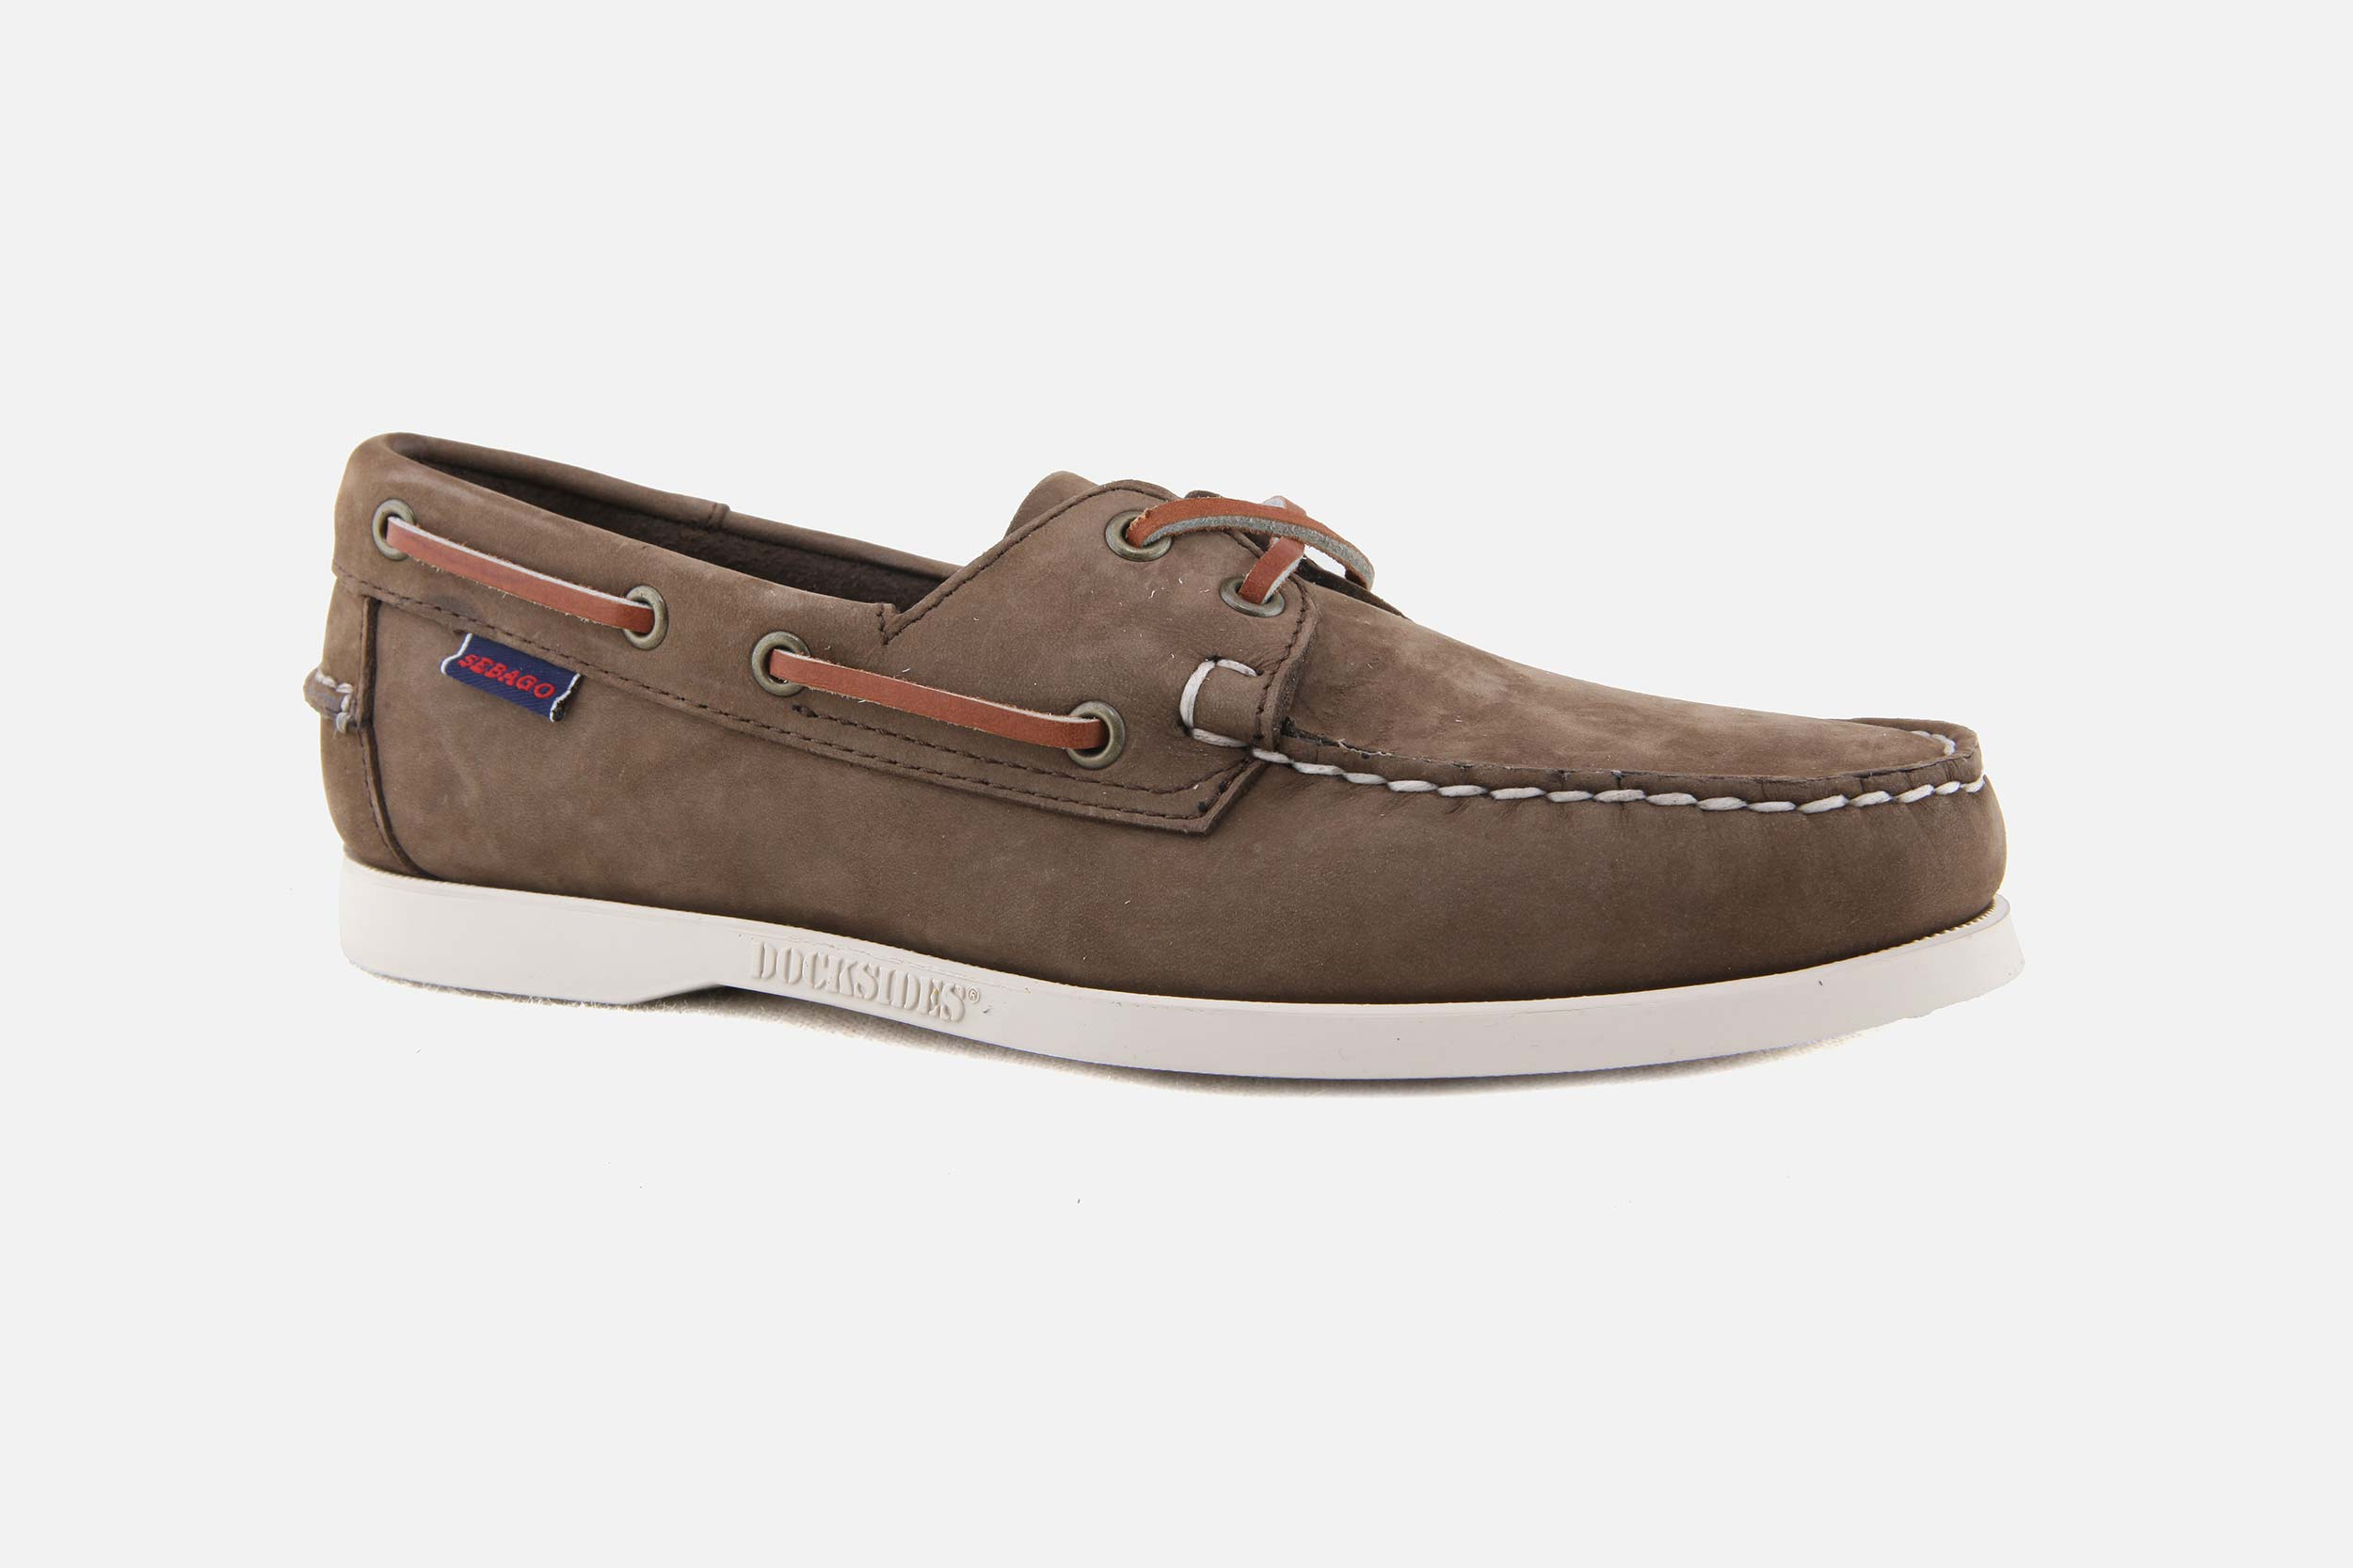 33c1537b721 Sebago - DOCKSIDES PORTLAND DARK BROWN Boat shoes on La ...